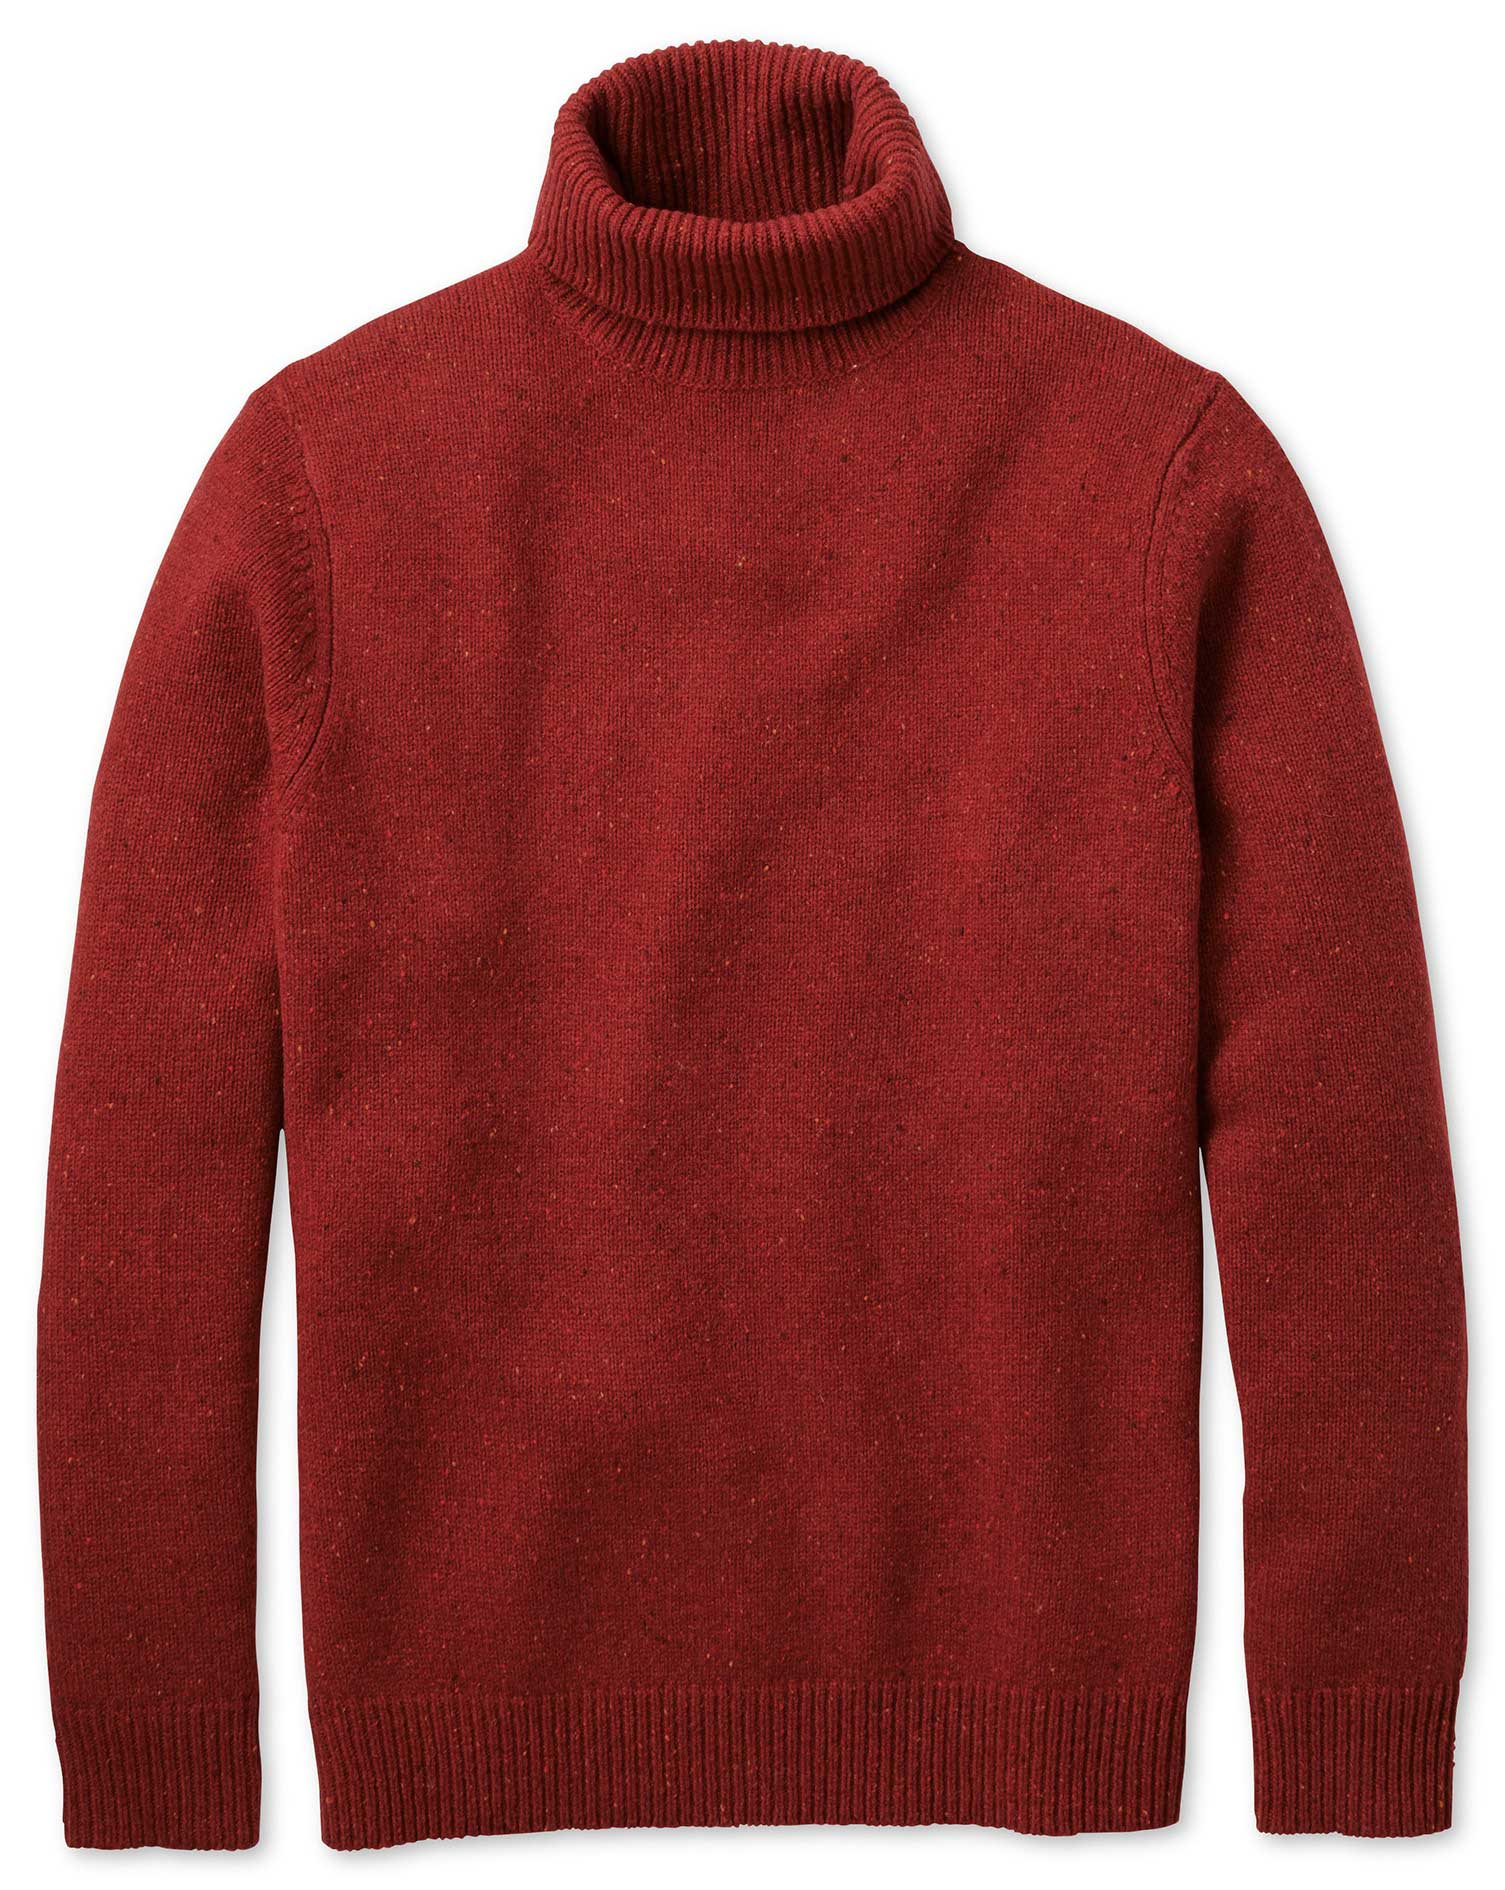 Red Roll Neck Donegal Merino Wool Jumper Size Large by Charles Tyrwhitt